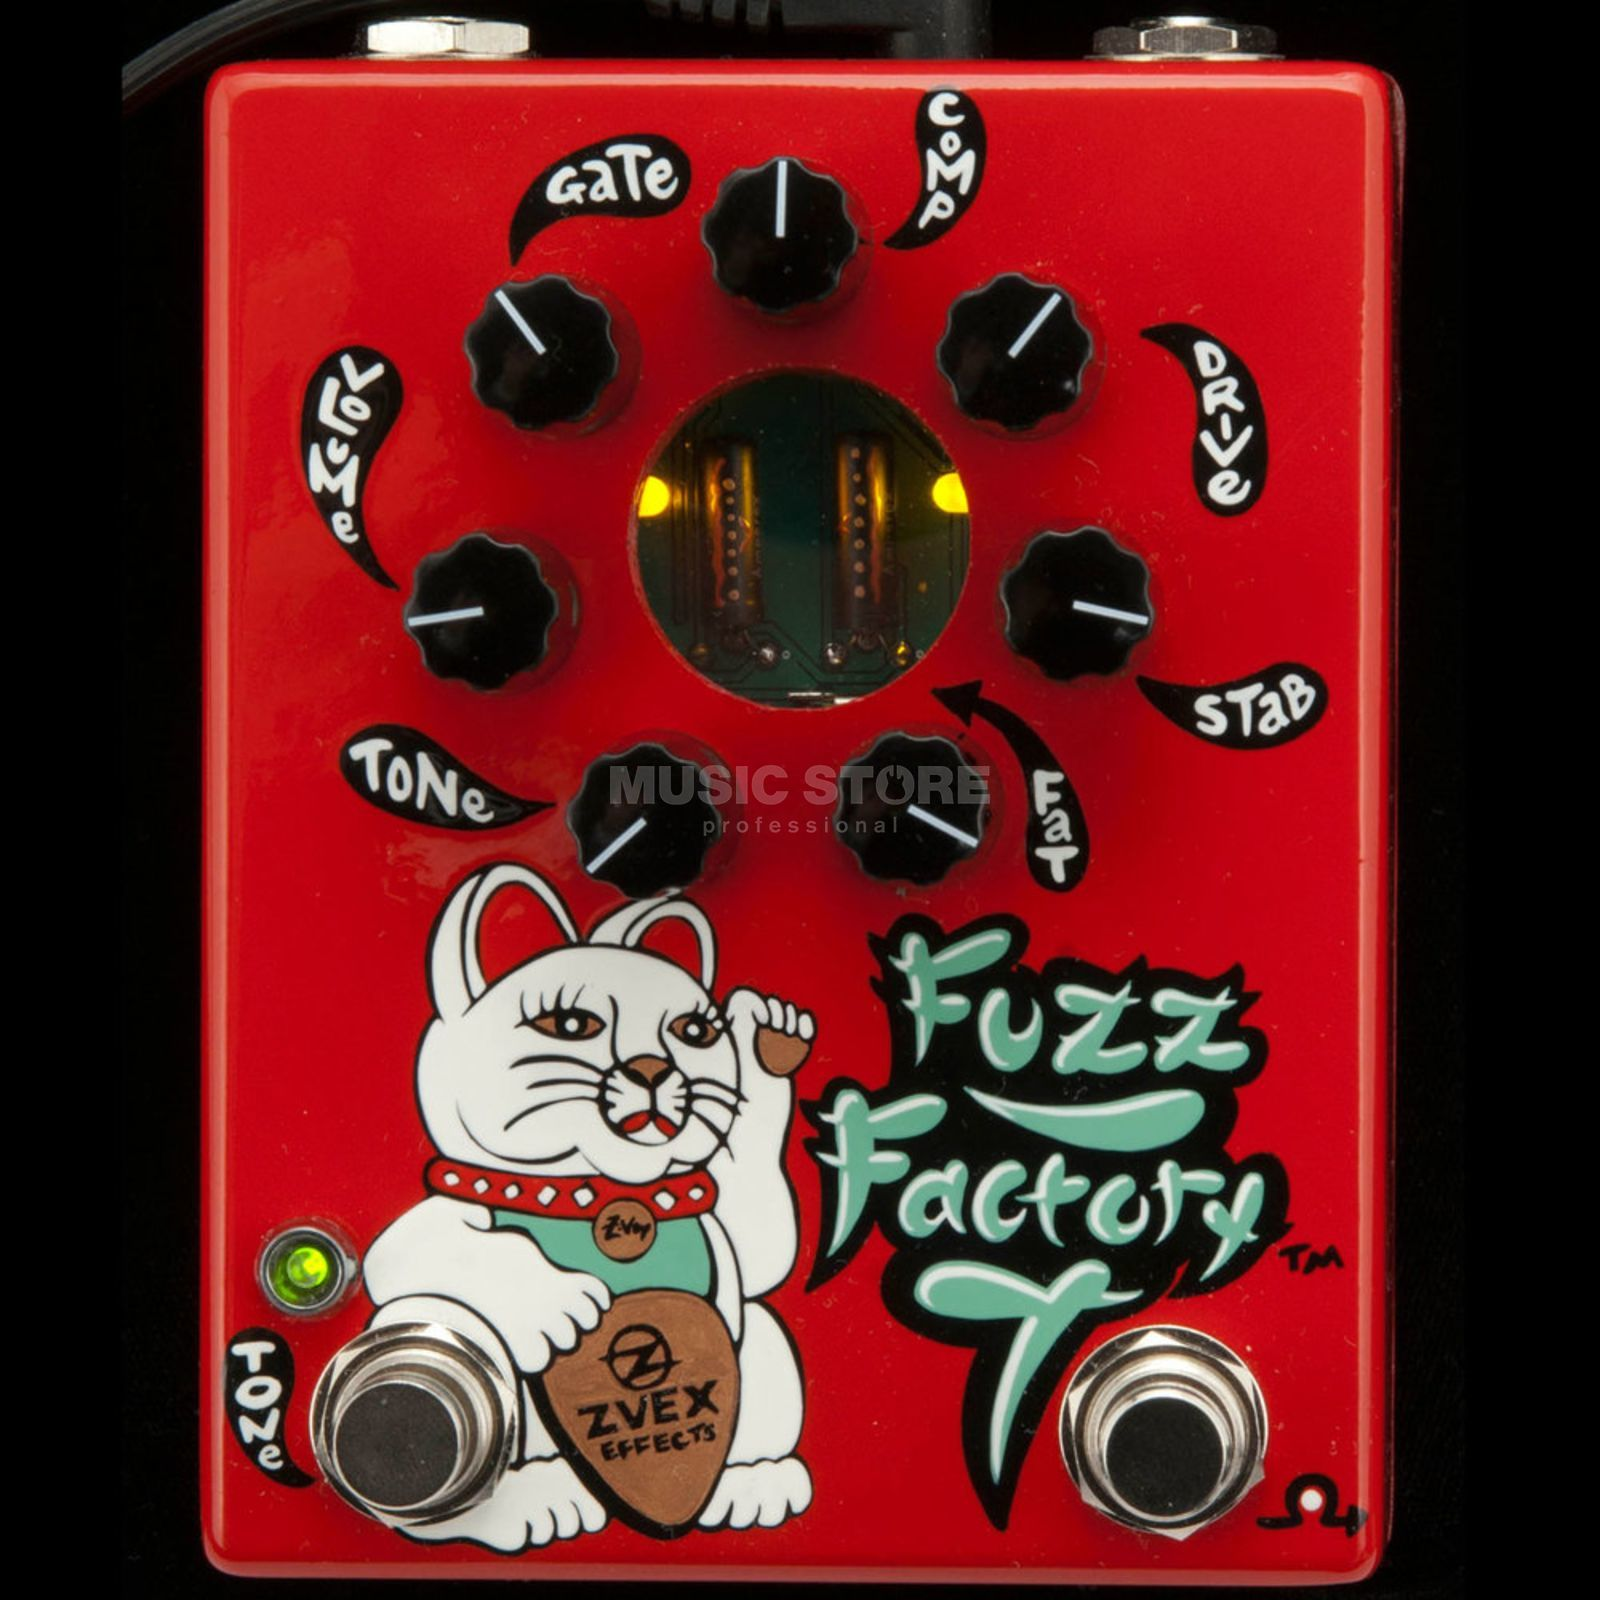 Z.VEX Fuzz Factory 7 rot Product Image